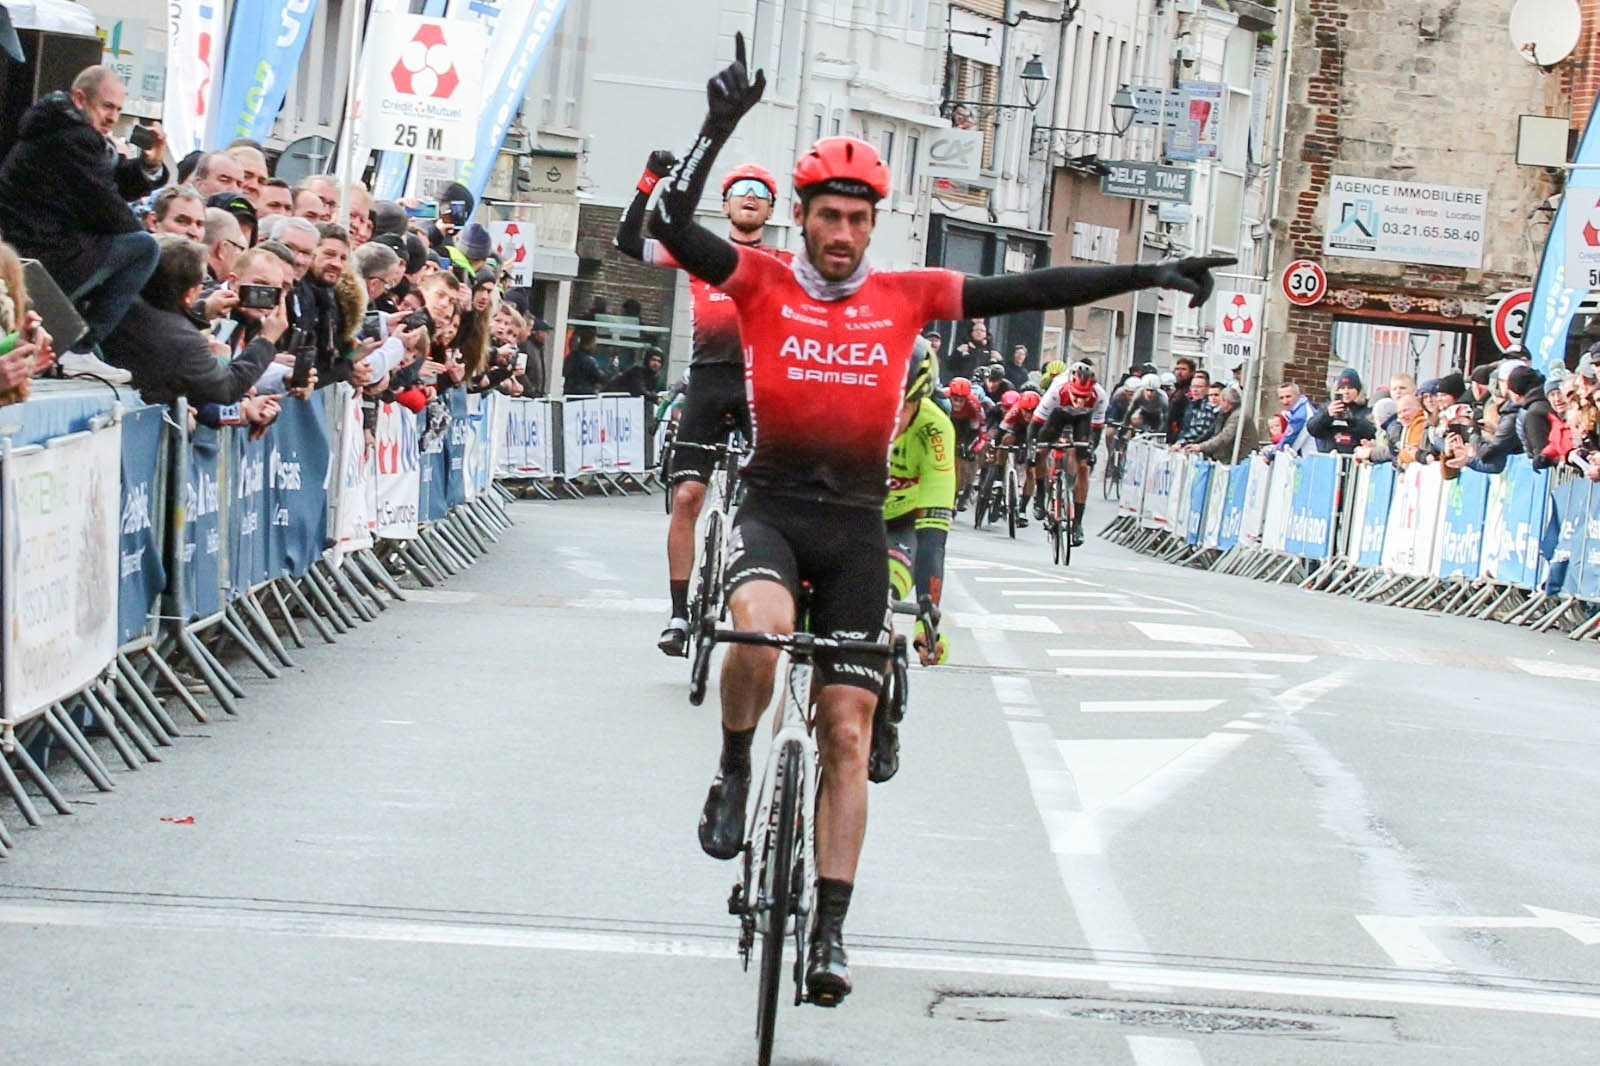 FLORIAN VACHON WINNER OF THE LILLERS GRAND PRIX ARKEA SAMSIC WITH TEXTILE AND EKOI GLASSES